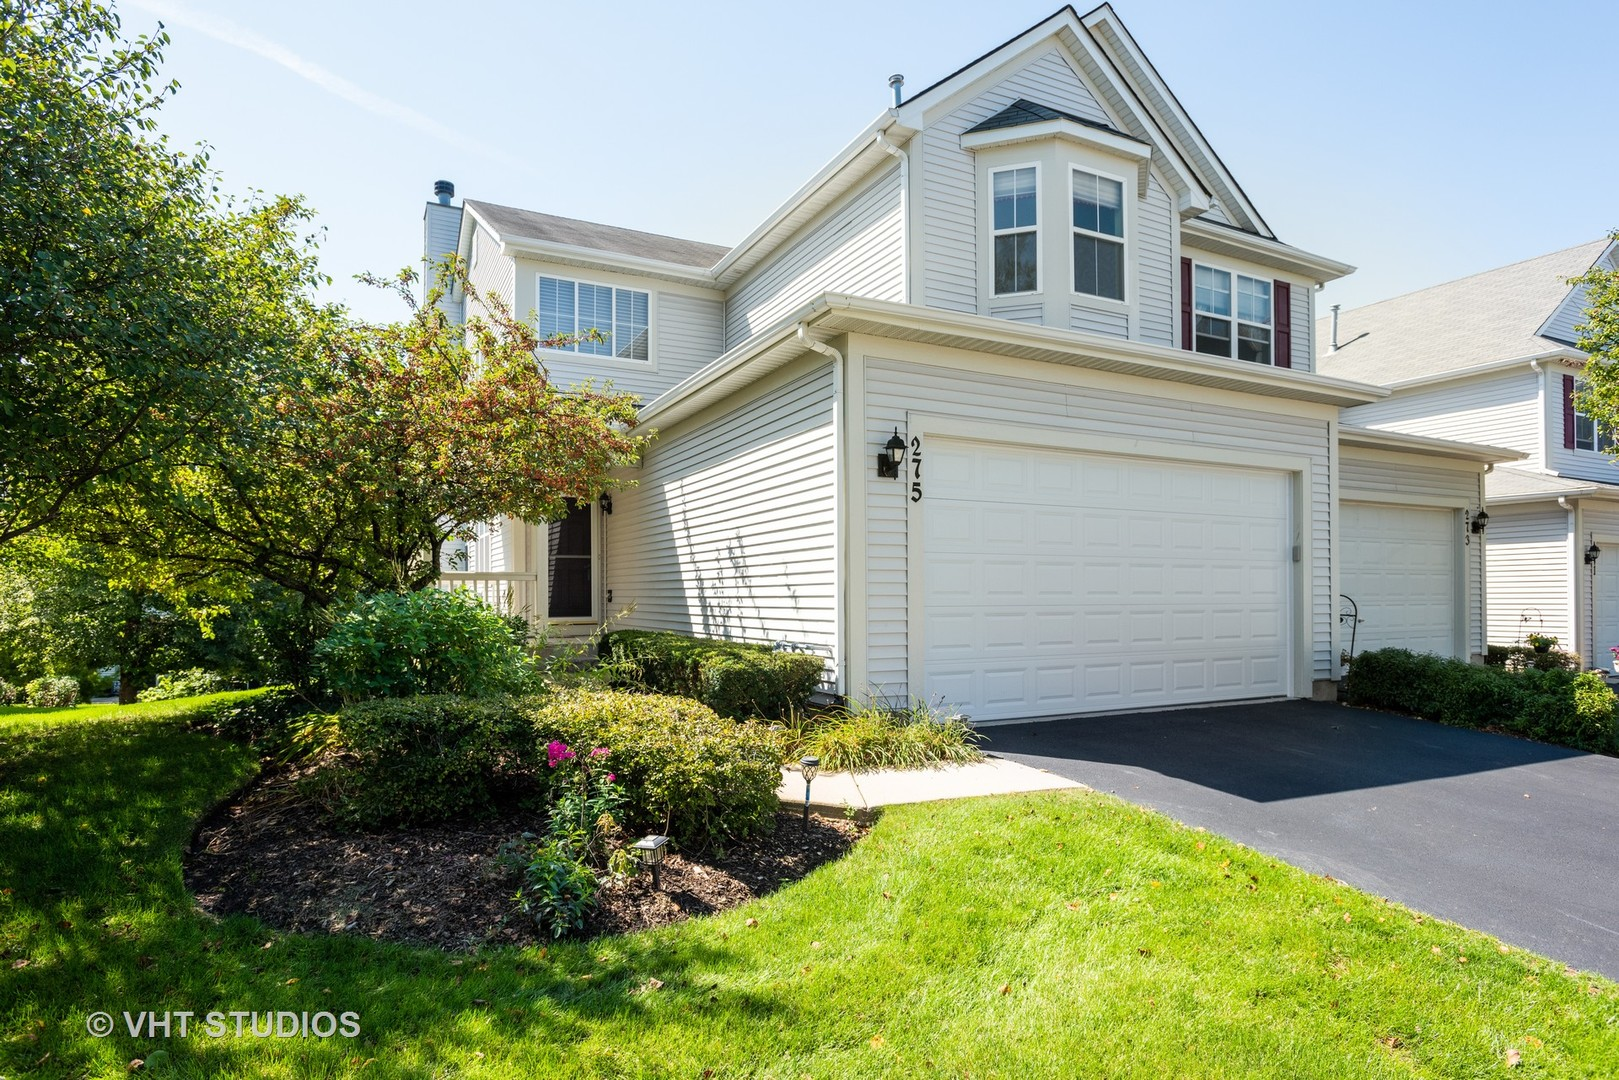 Photo for 275 Tower Hill Drive, St. Charles, IL 60175 (MLS # 10519505)